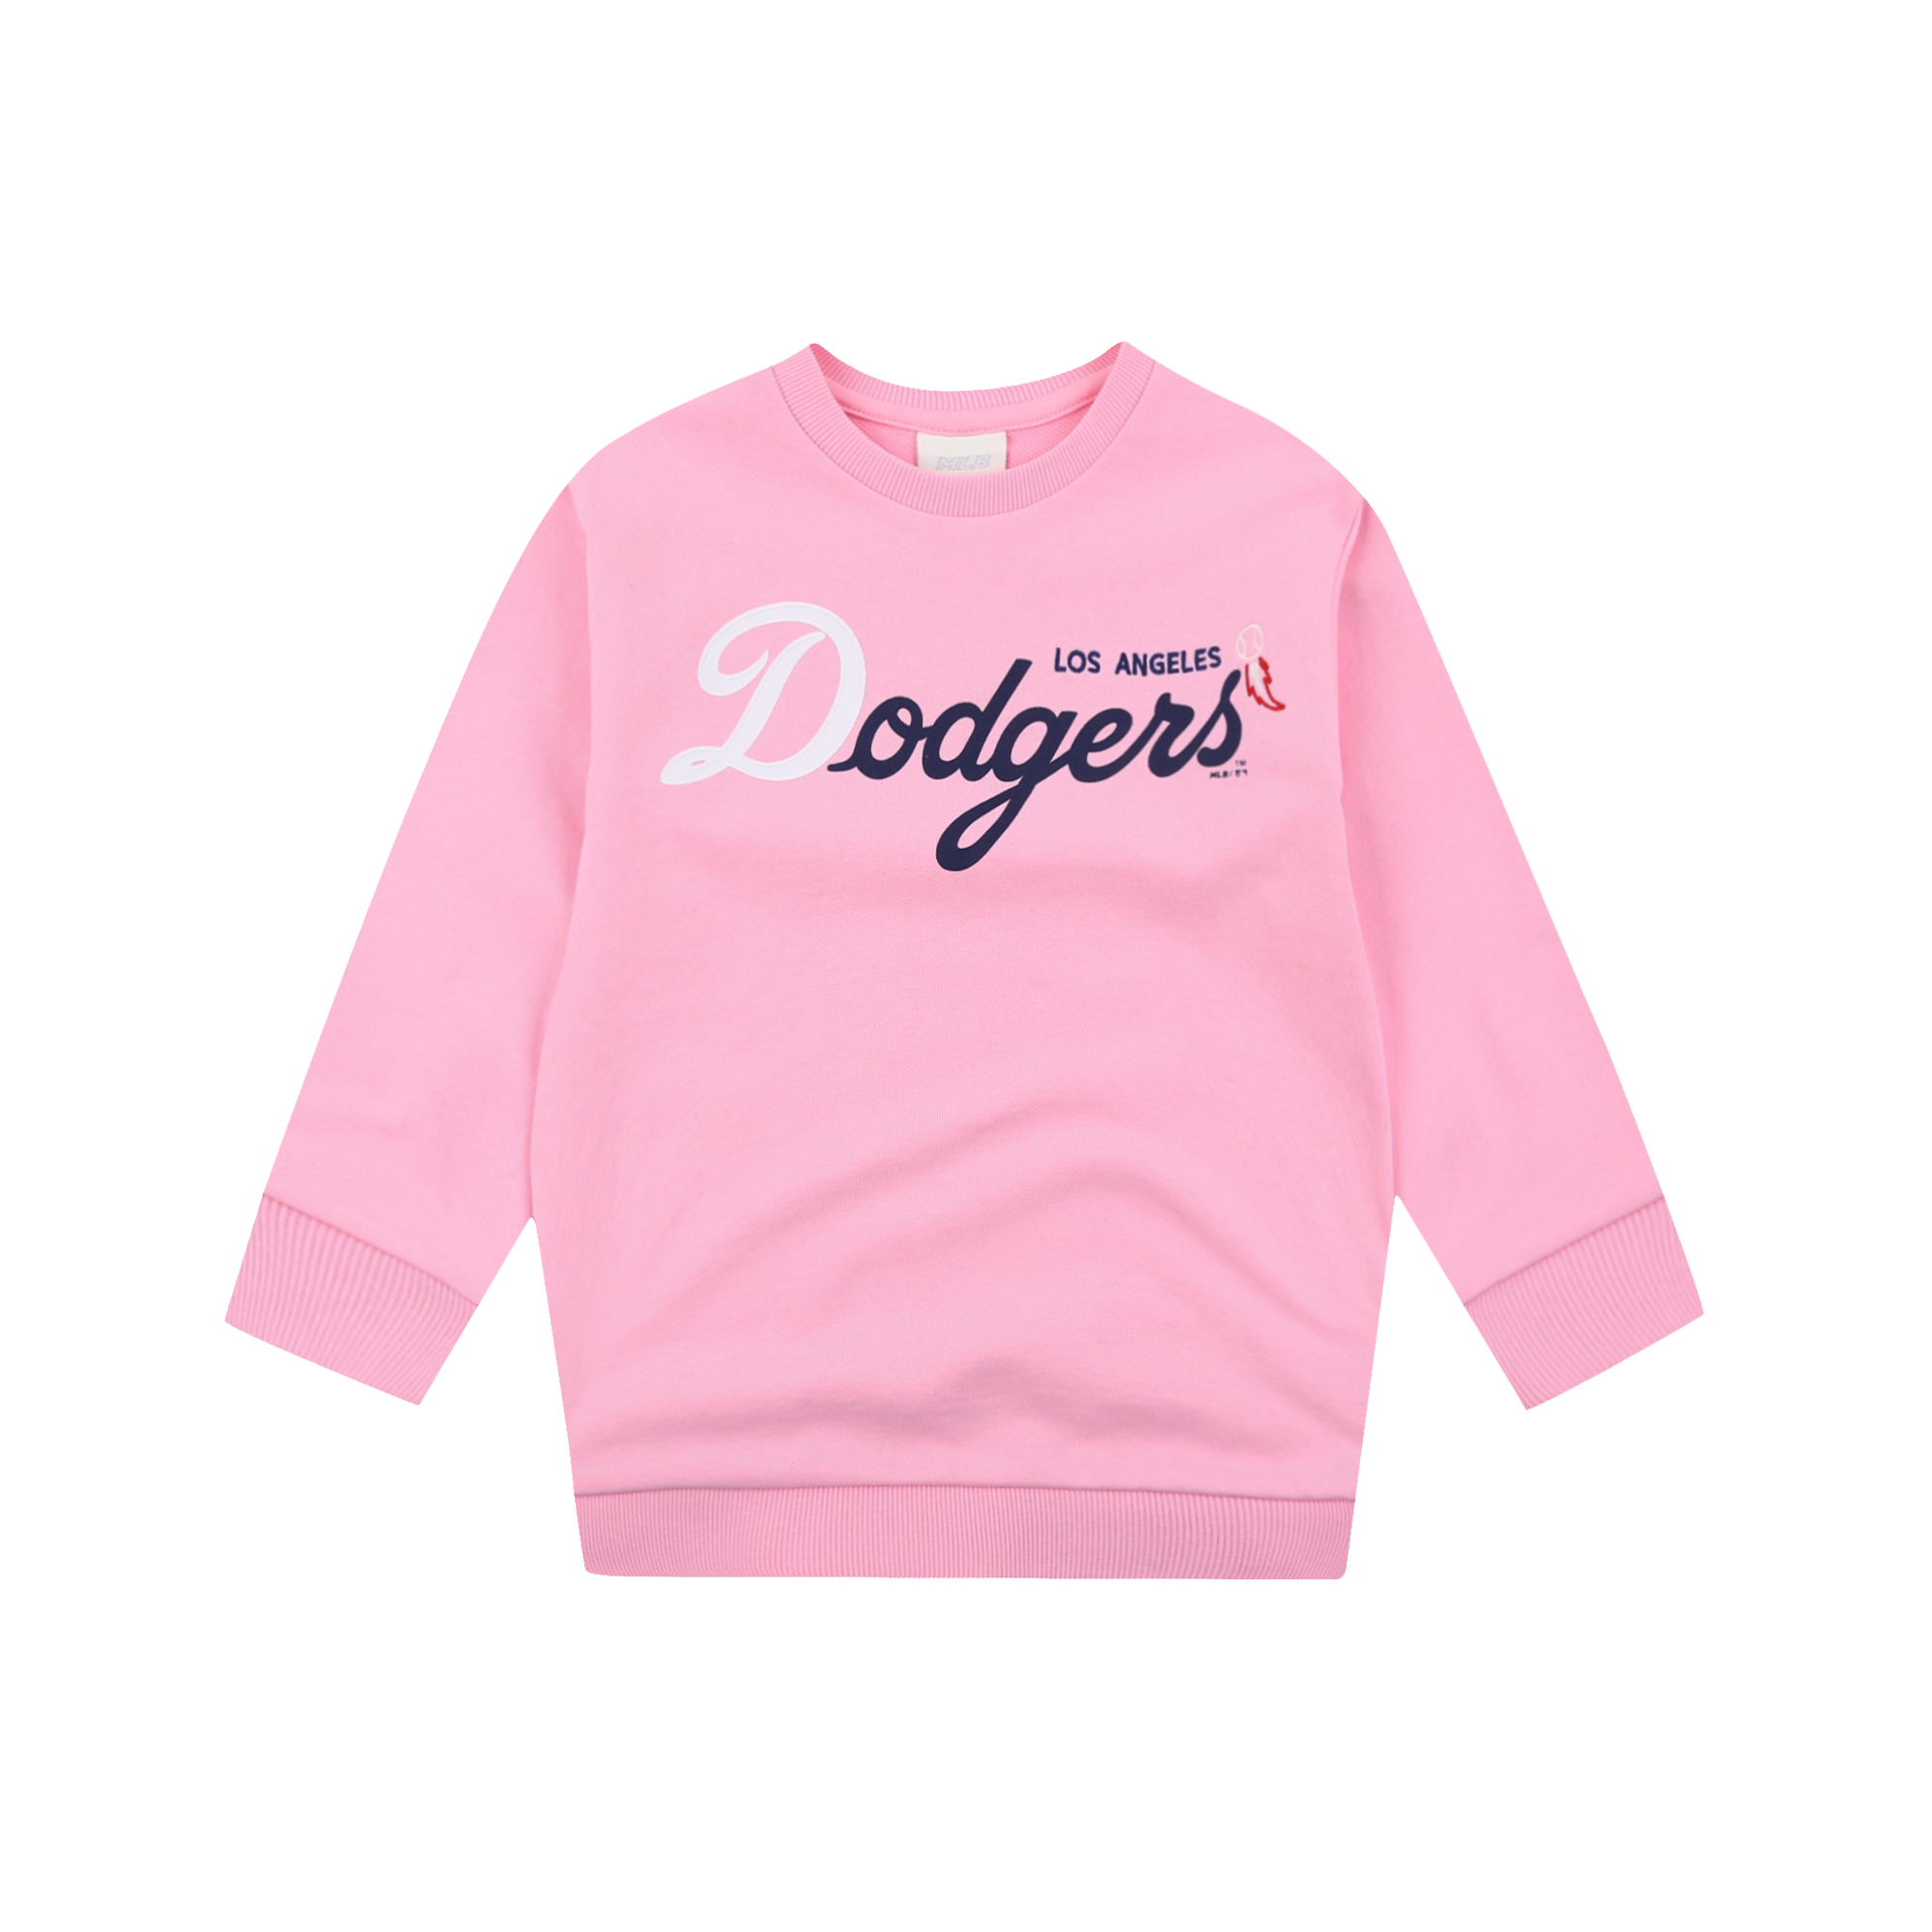 LA DODGERS GIRL'S MEGA CURSIVE LOGO OVER FIT SWEATSHIRT